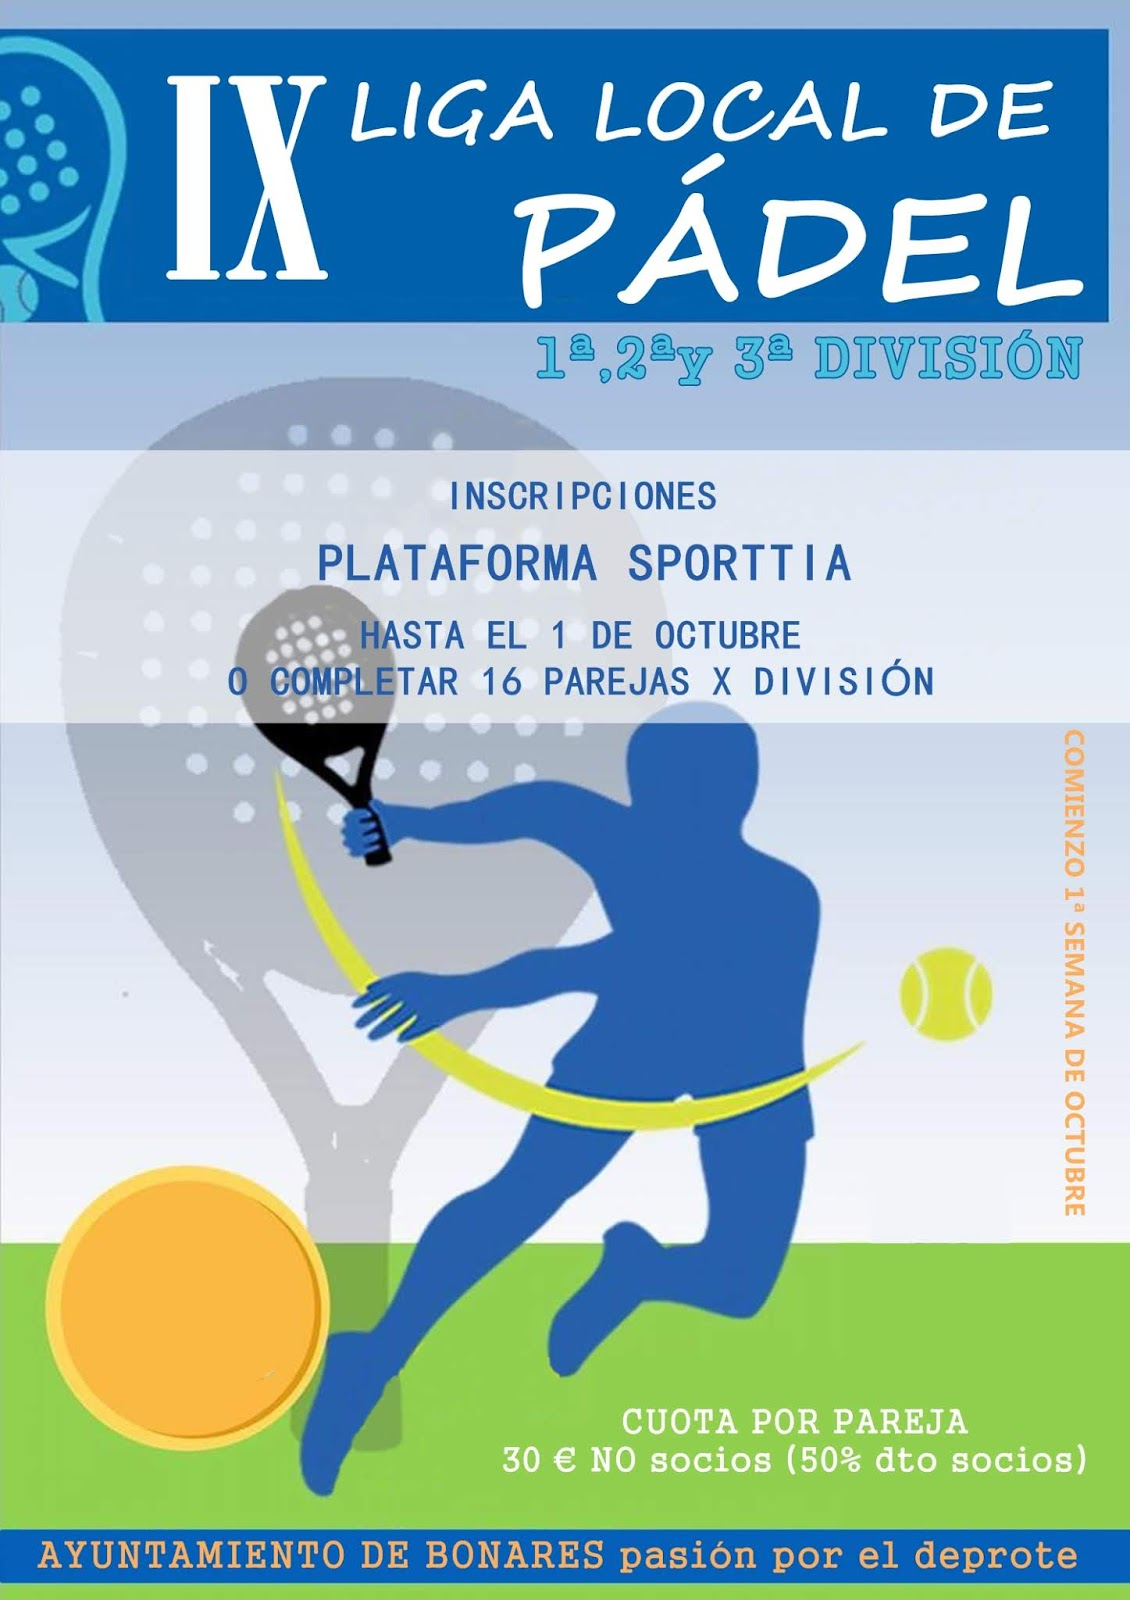 IX LIGA LOCAL DE PÁDEL